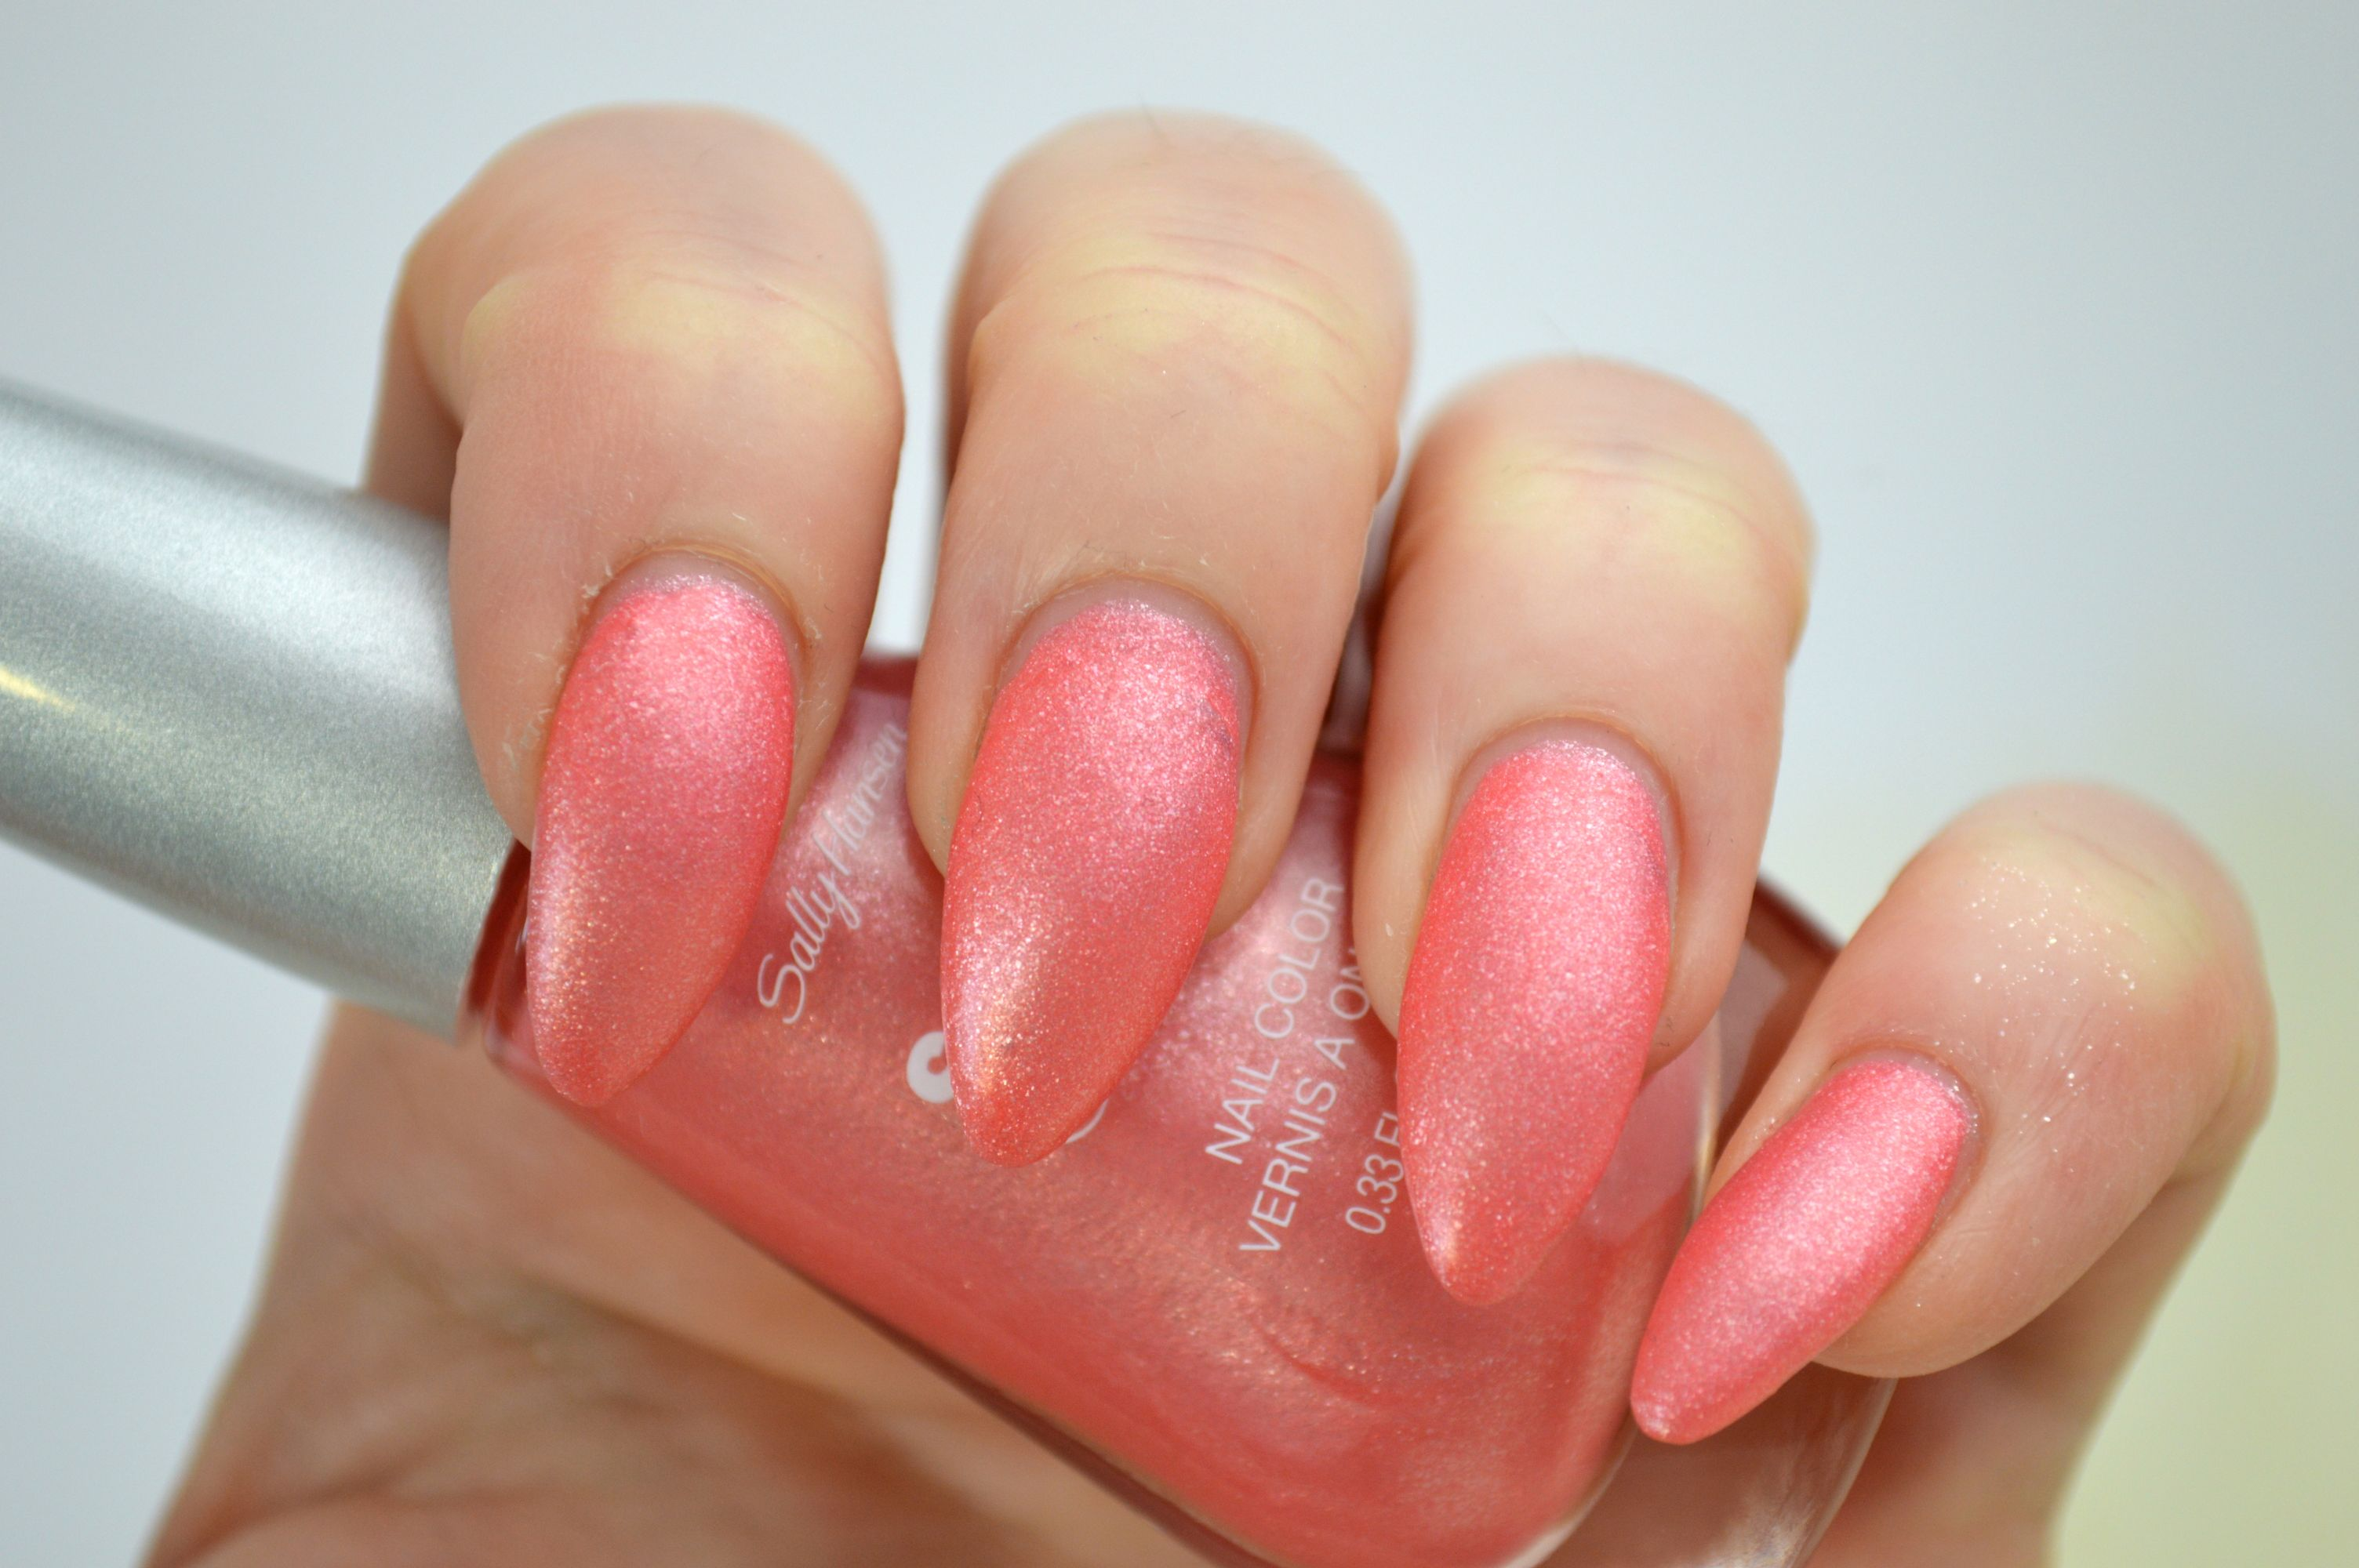 Sally_Hansen_Satin_Glam_Chic_Pink_Nailpolish